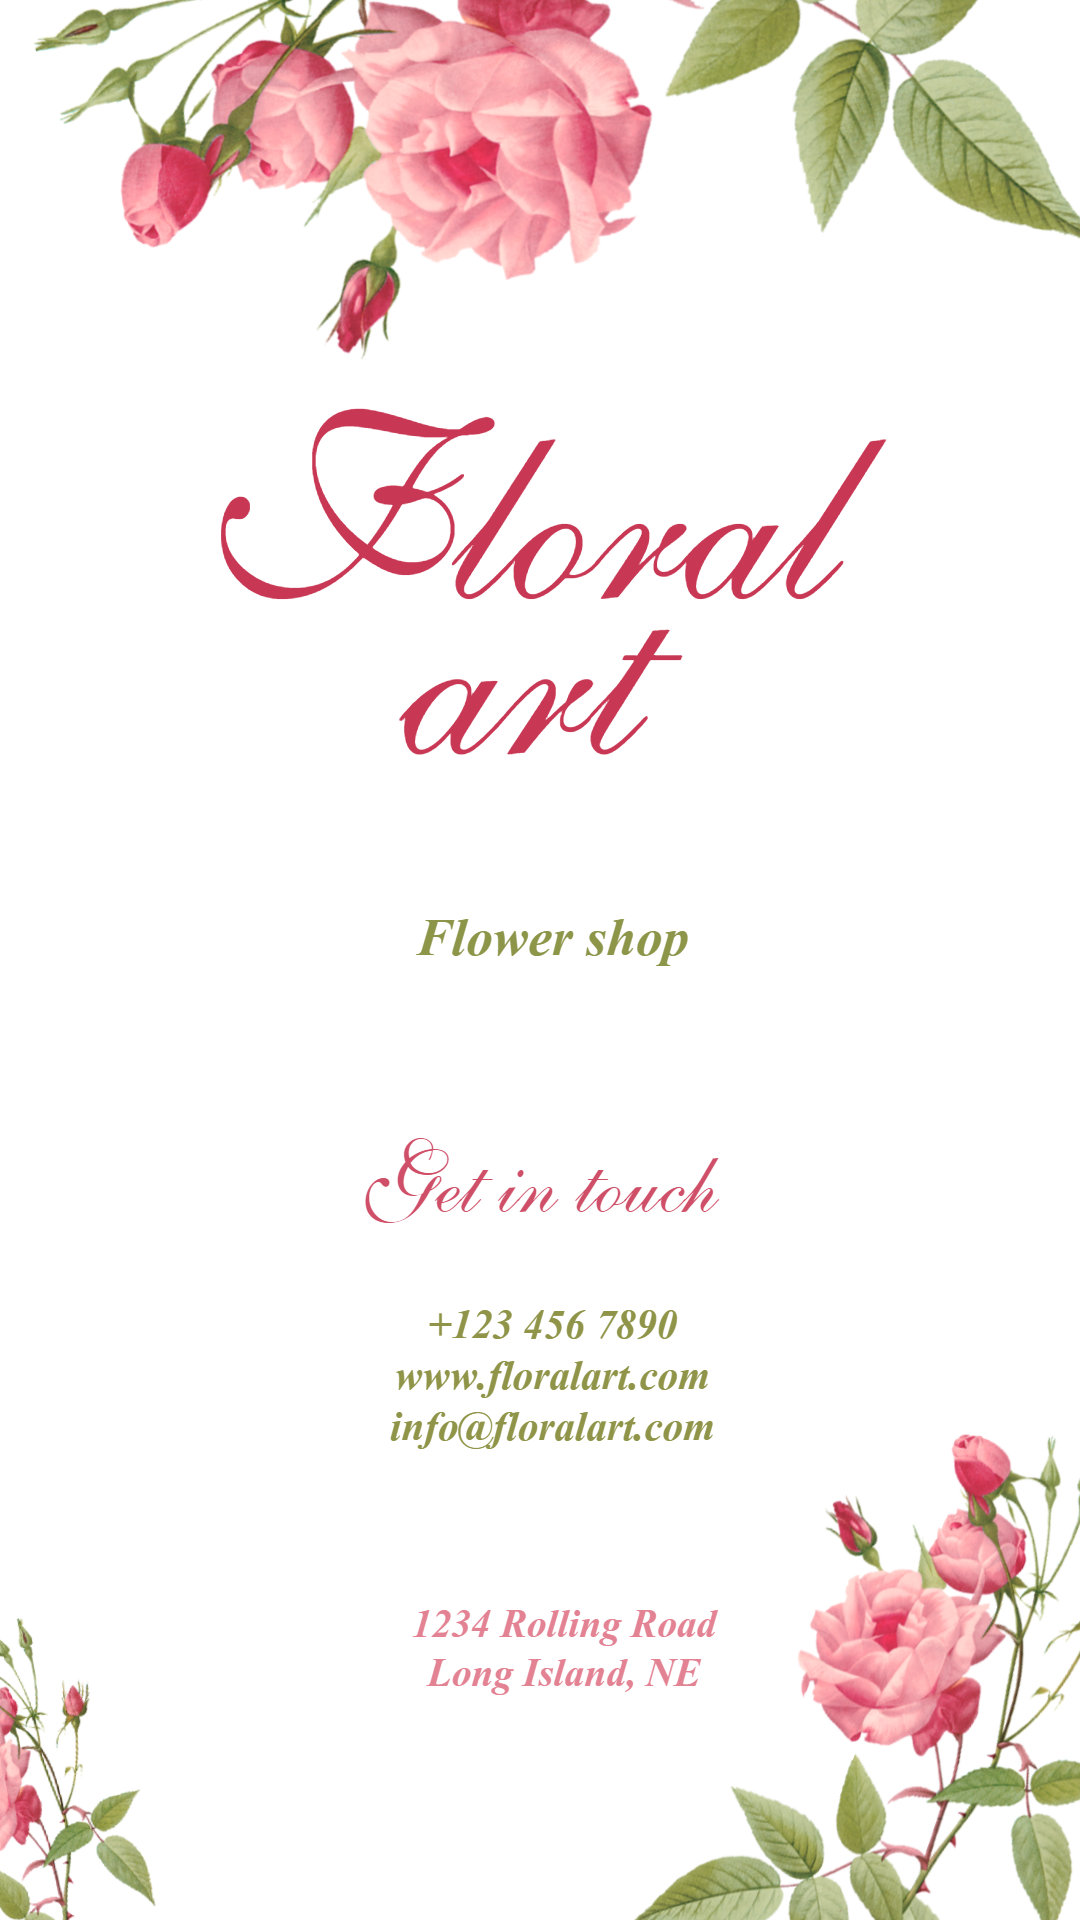 Flower shop #business #flower Animation  Template